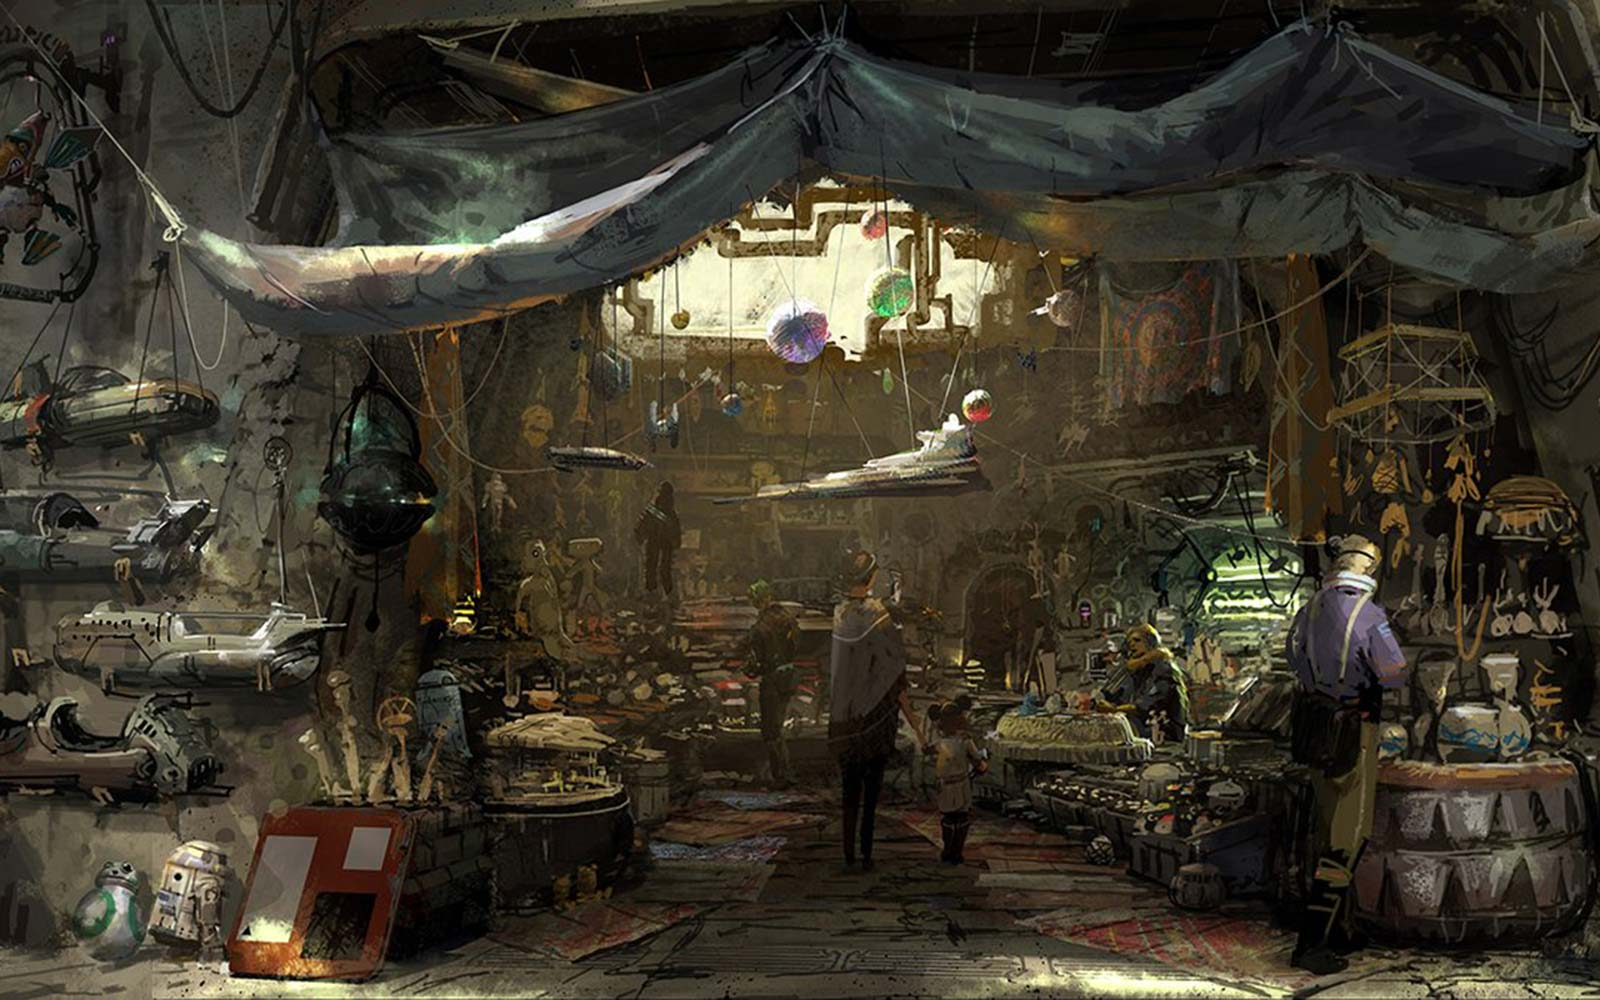 Disney Just Revealed New Images of the Star Wars Park Everyone's Been Waiting For